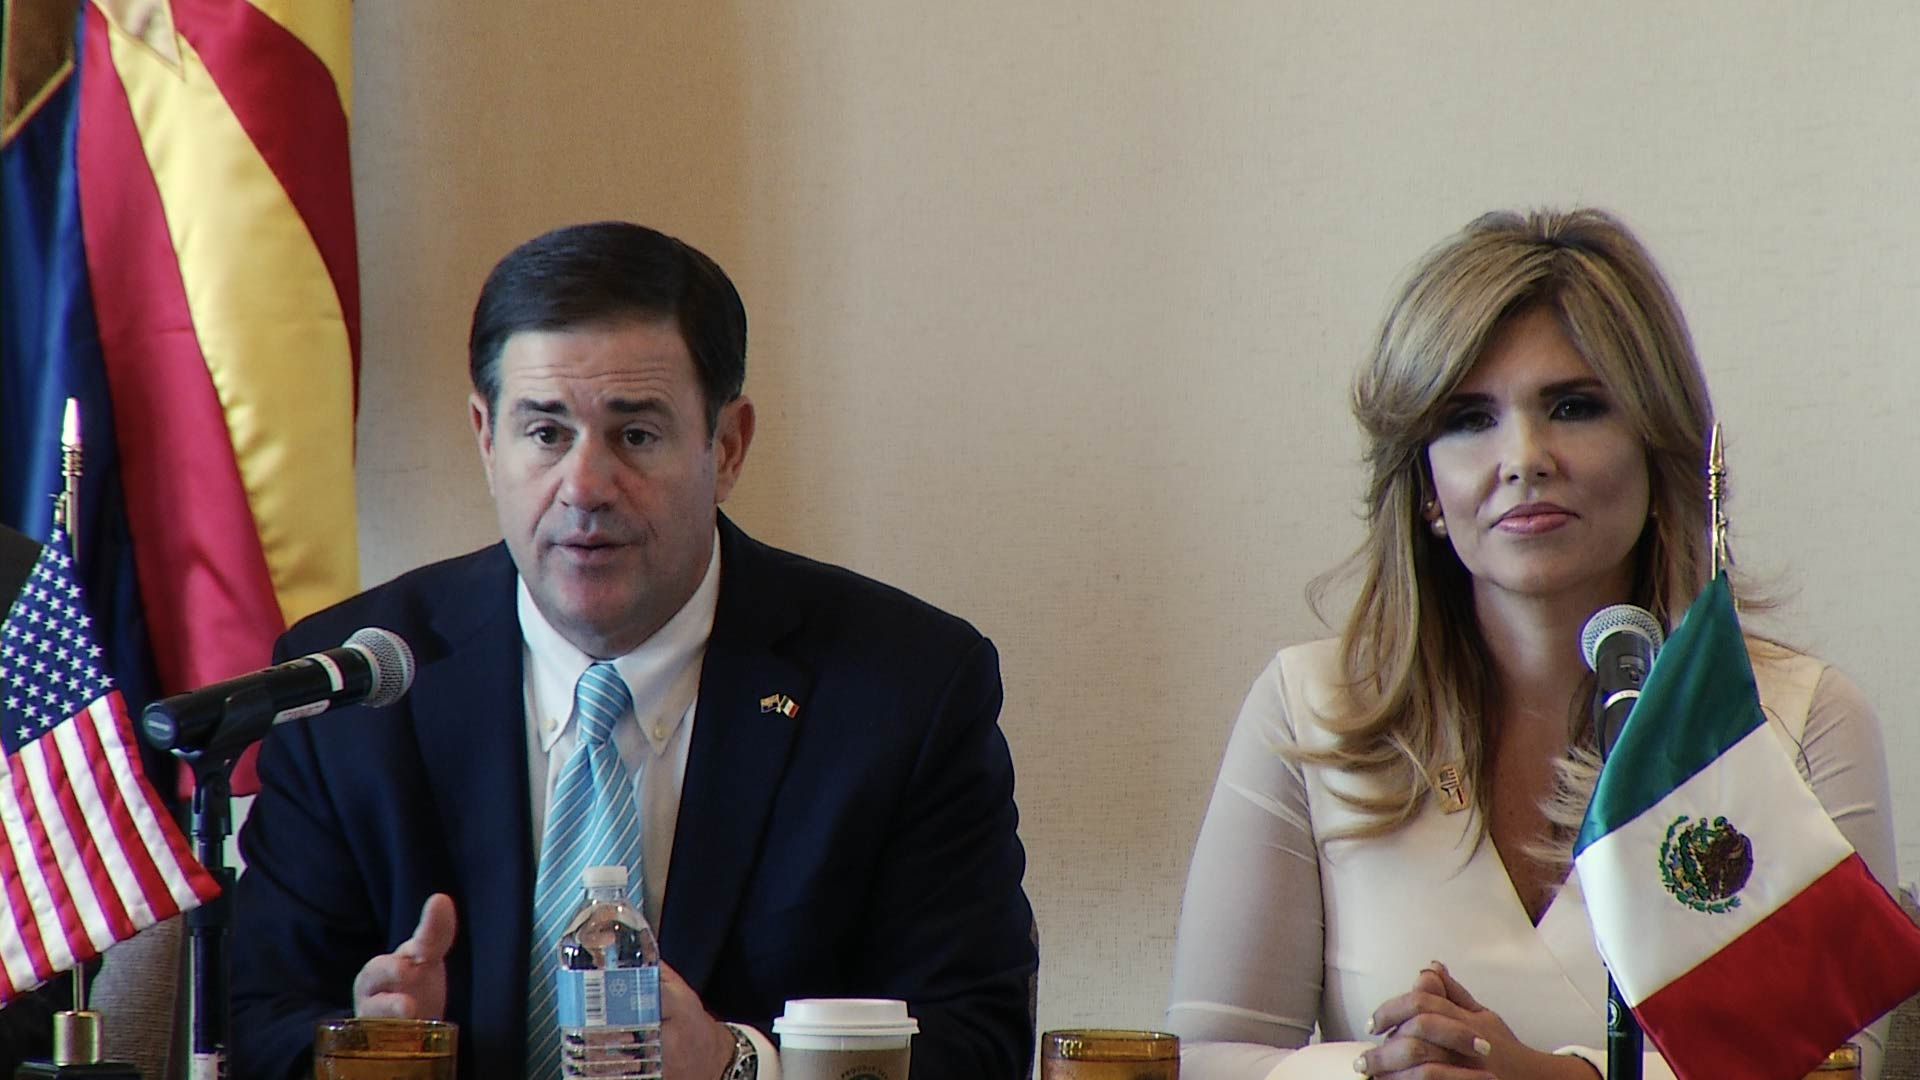 Arizona Governor Doug Ducey and Sonora, Mexico Governor Claudia Pavlovich address the Arizona-Mexico Commission at the organization's annual summit, which was held in Tucson on June 15, 2018.